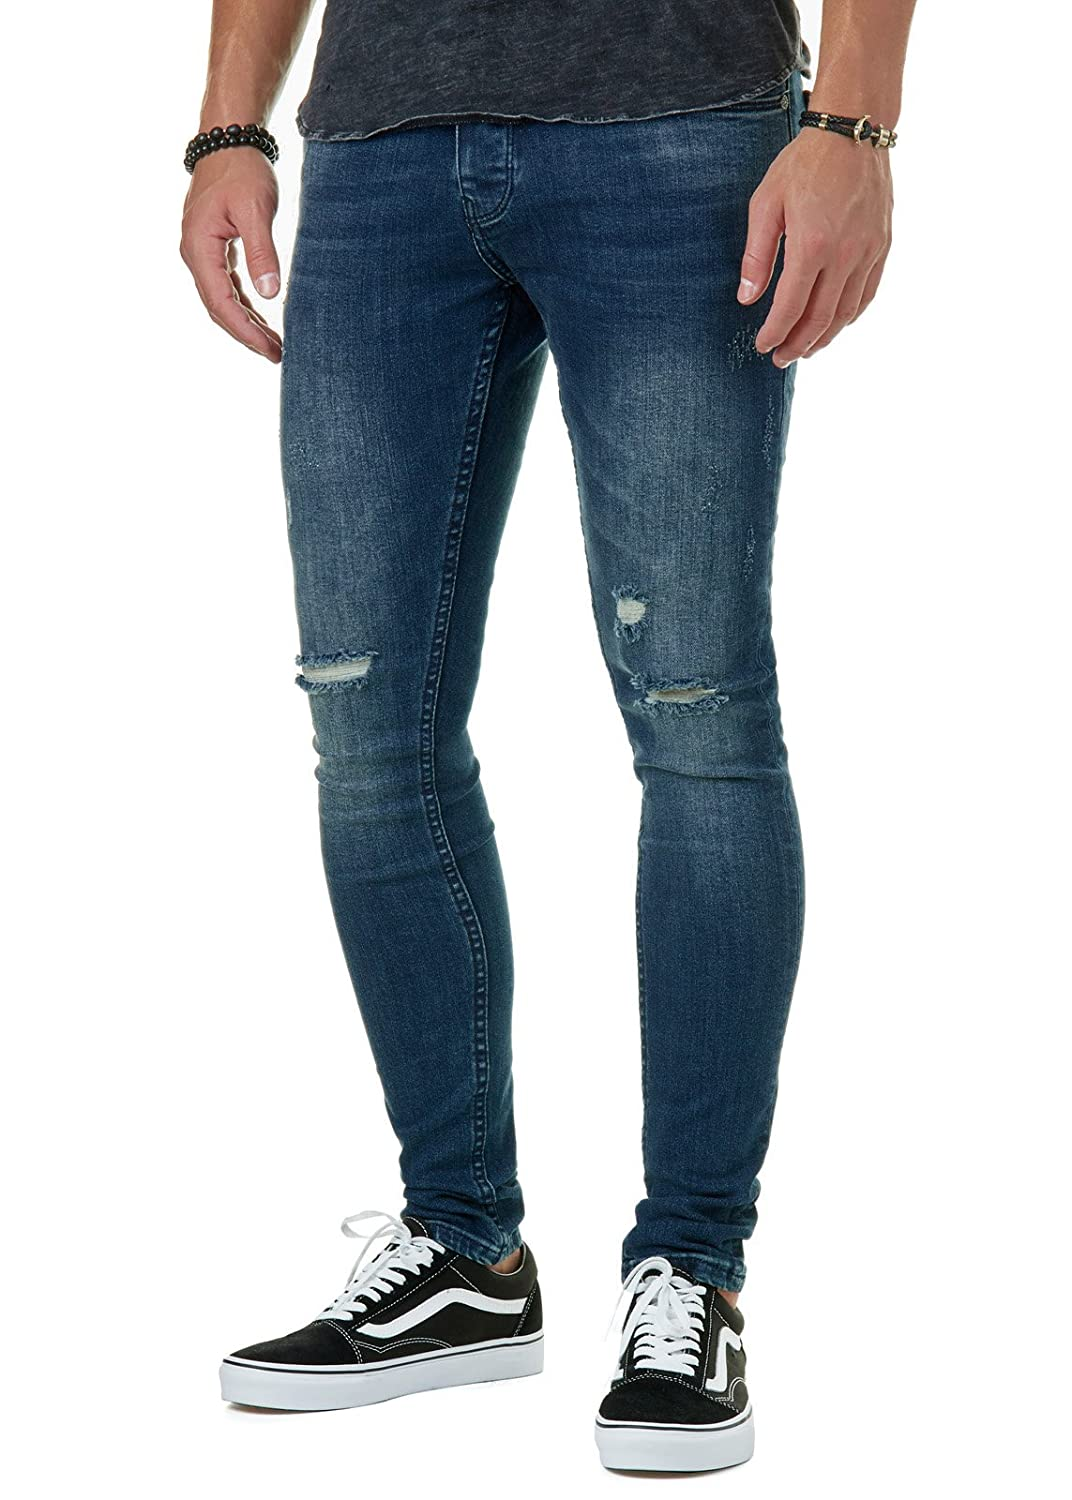 NEU    285b DESTROYED STRASS NIETEN SKINNY  DAMENJEANS 0€